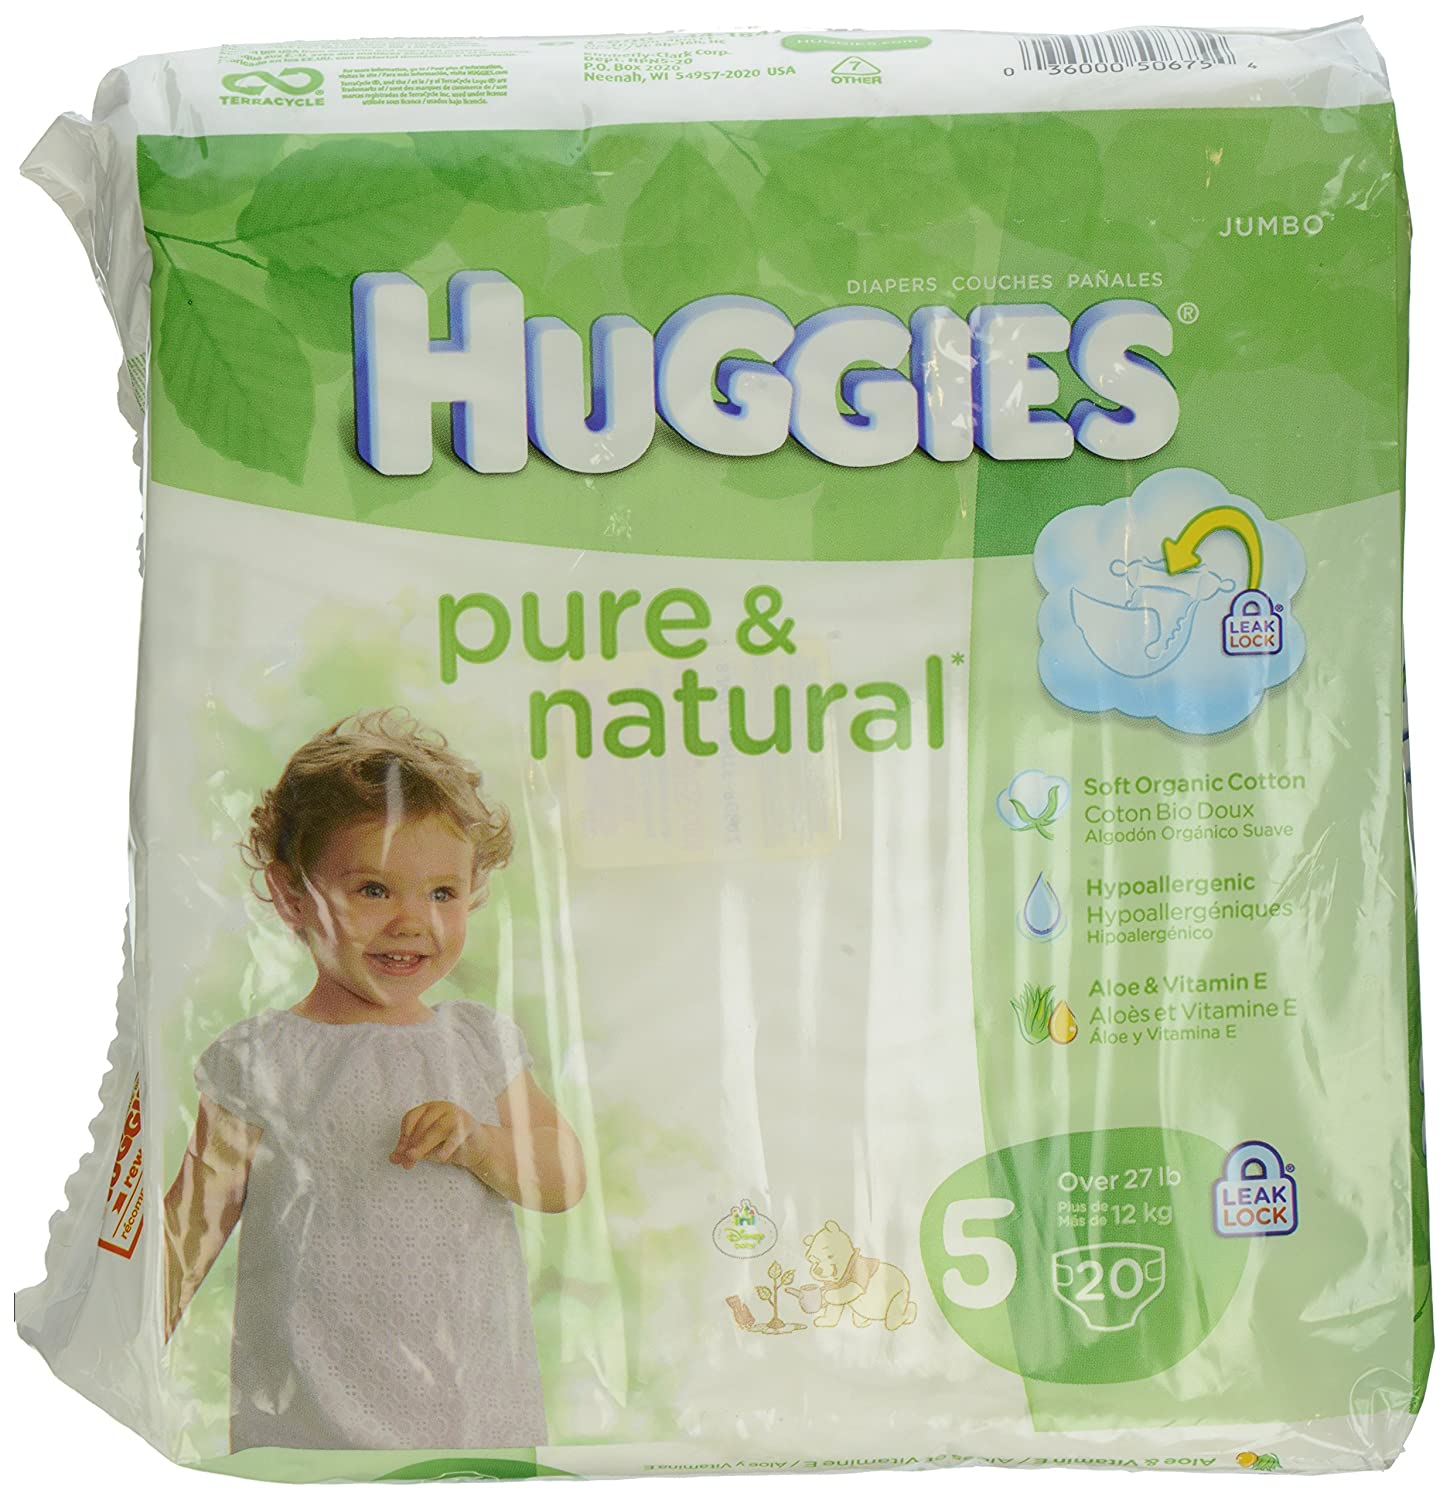 Amazon.com: Huggies Pure and Natural Diapers, Size 5, 20 Count: Prime Pantry